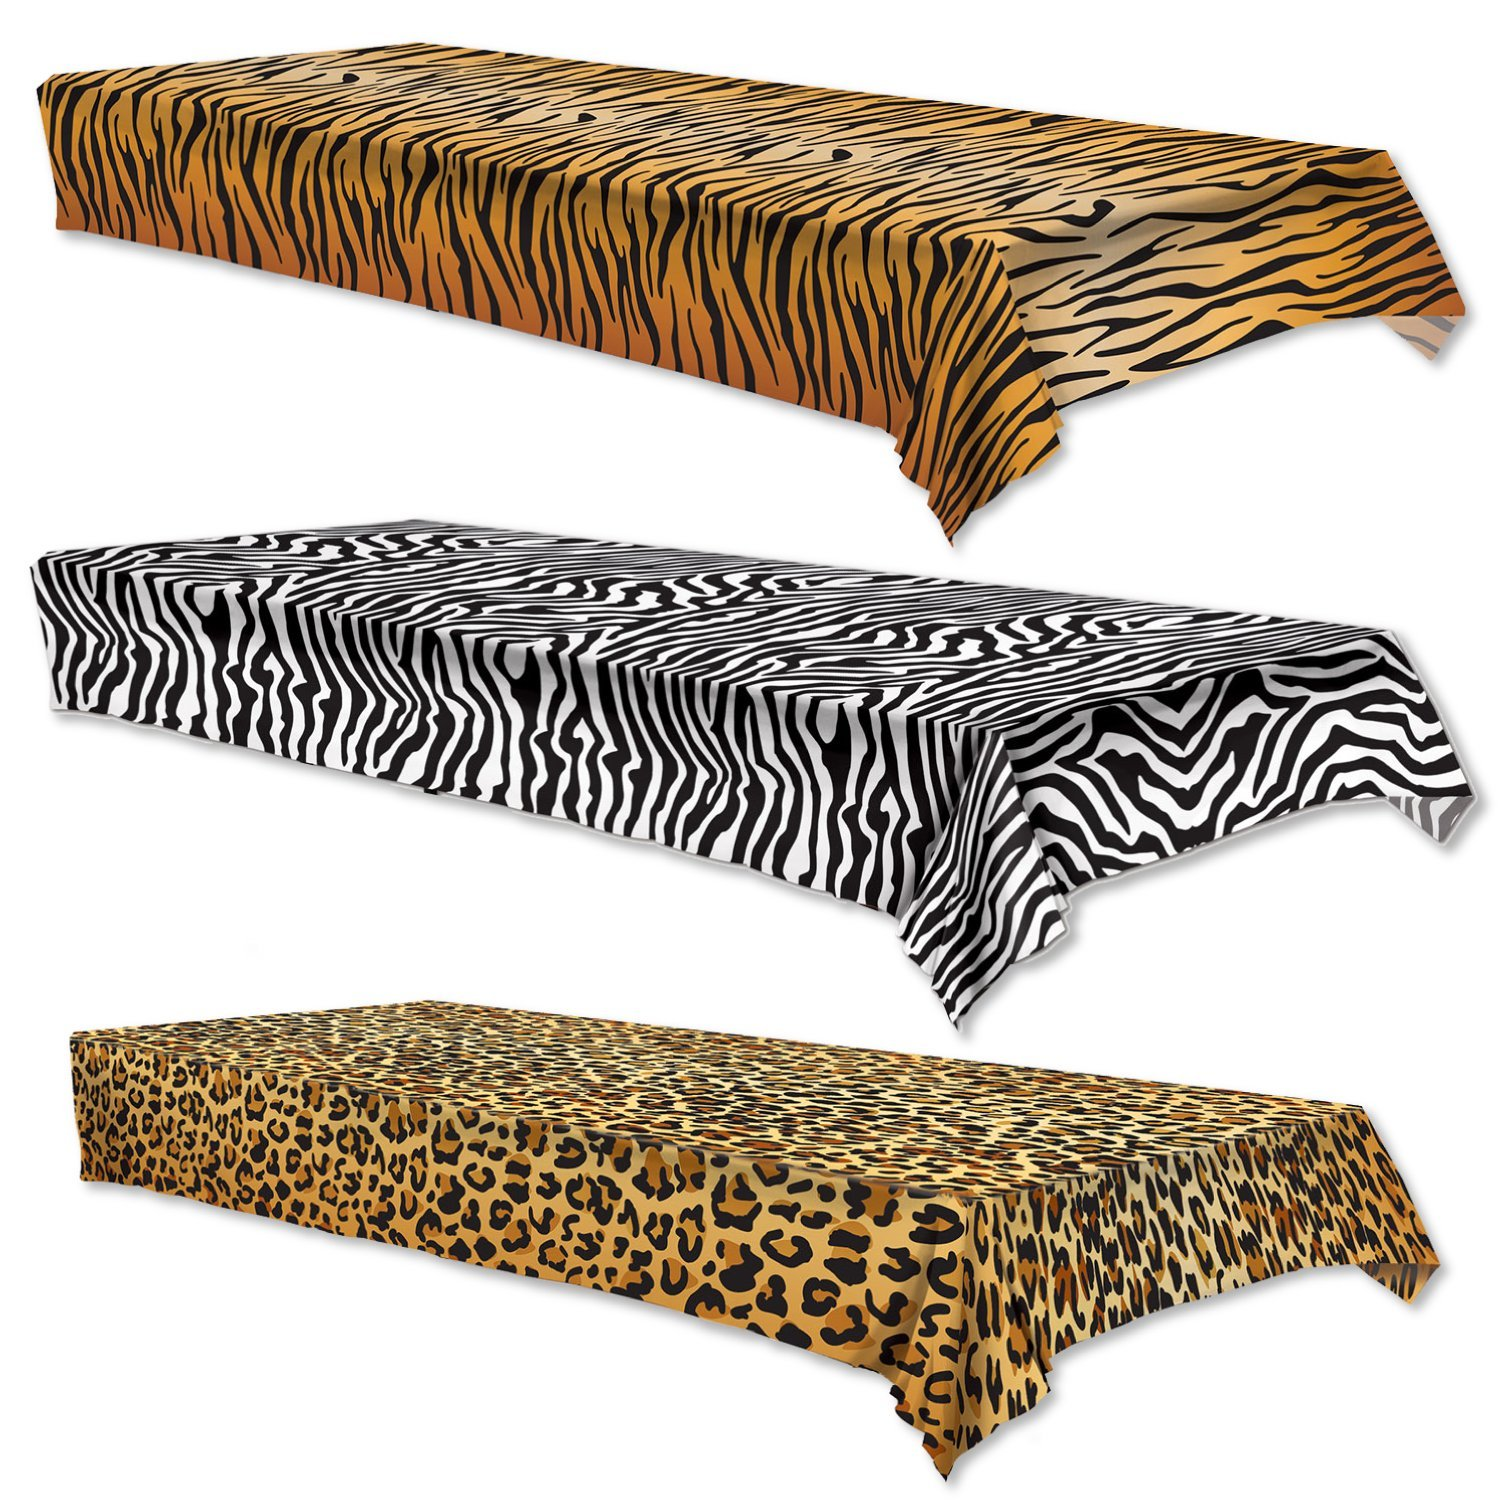 Zoo Animal Print Table Covers - Set of 3 - Zebra, Tiger, Leopard (54 x 108)